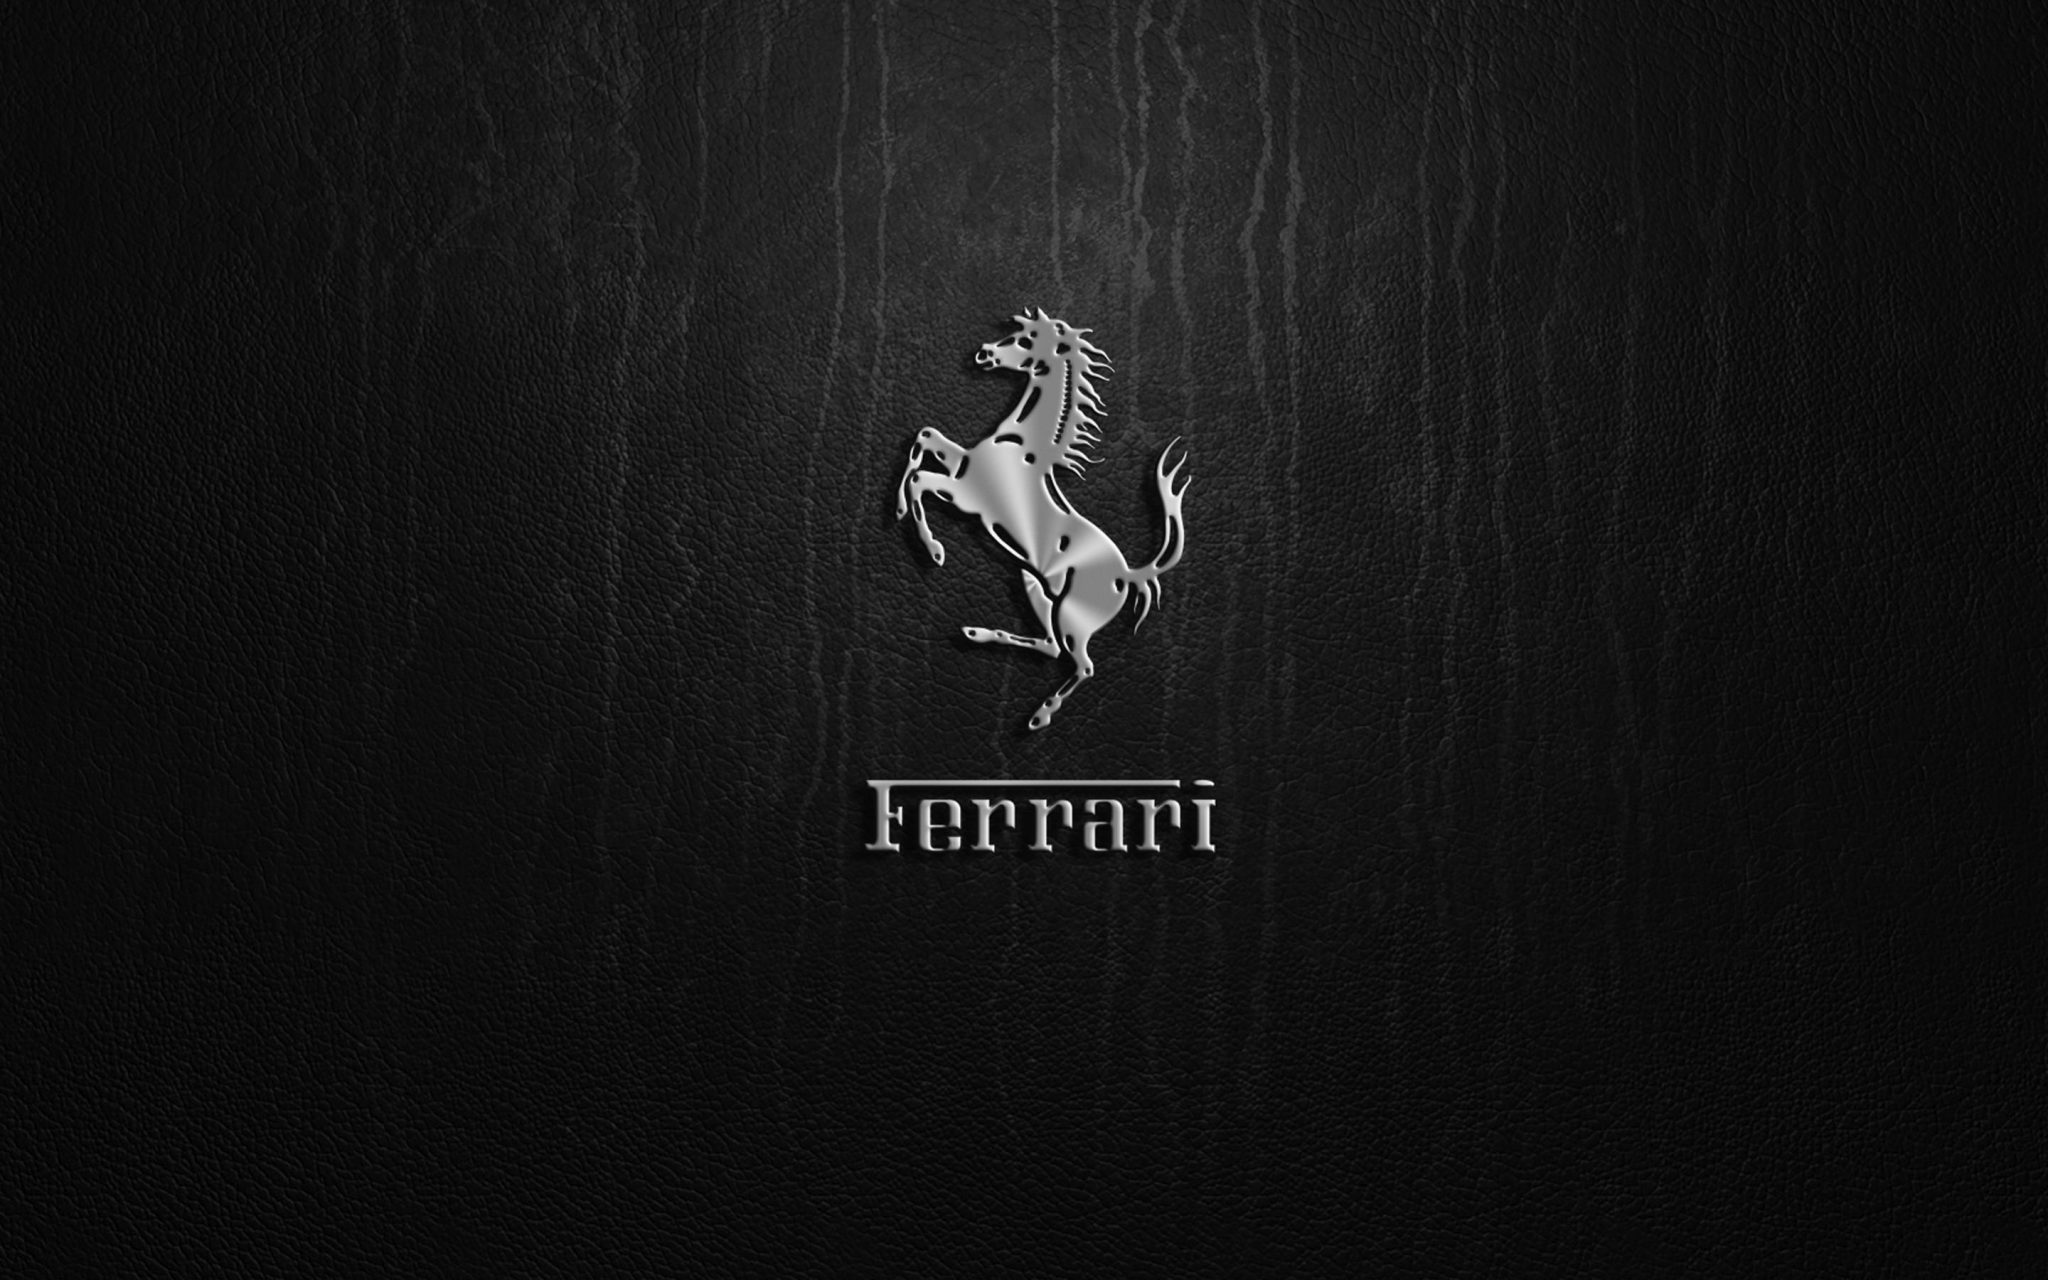 Ferrari-Logo-Wallpapers-hd-09